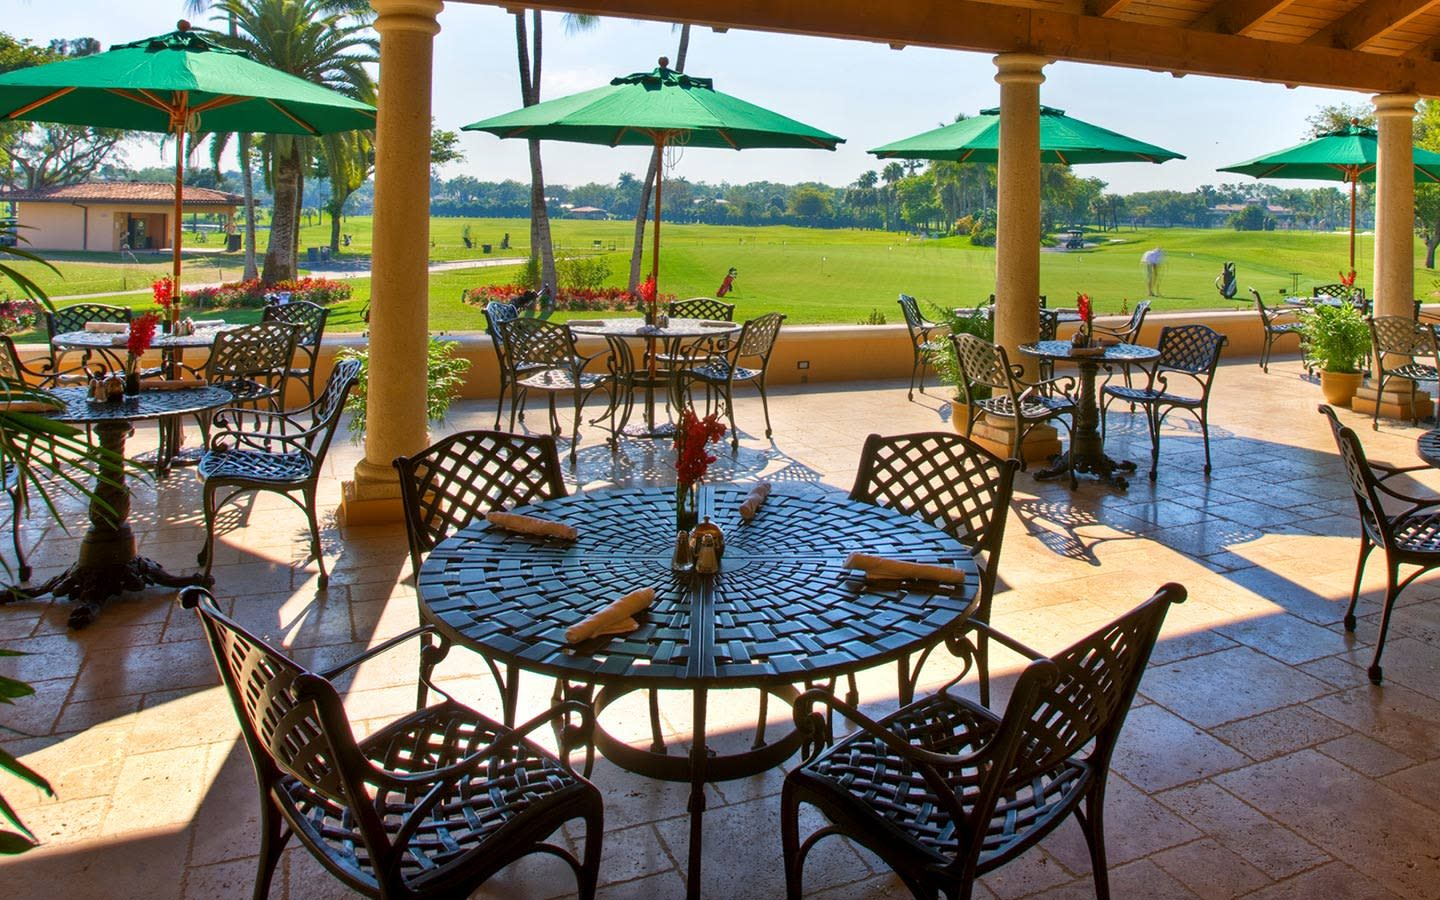 Dine by the golf course